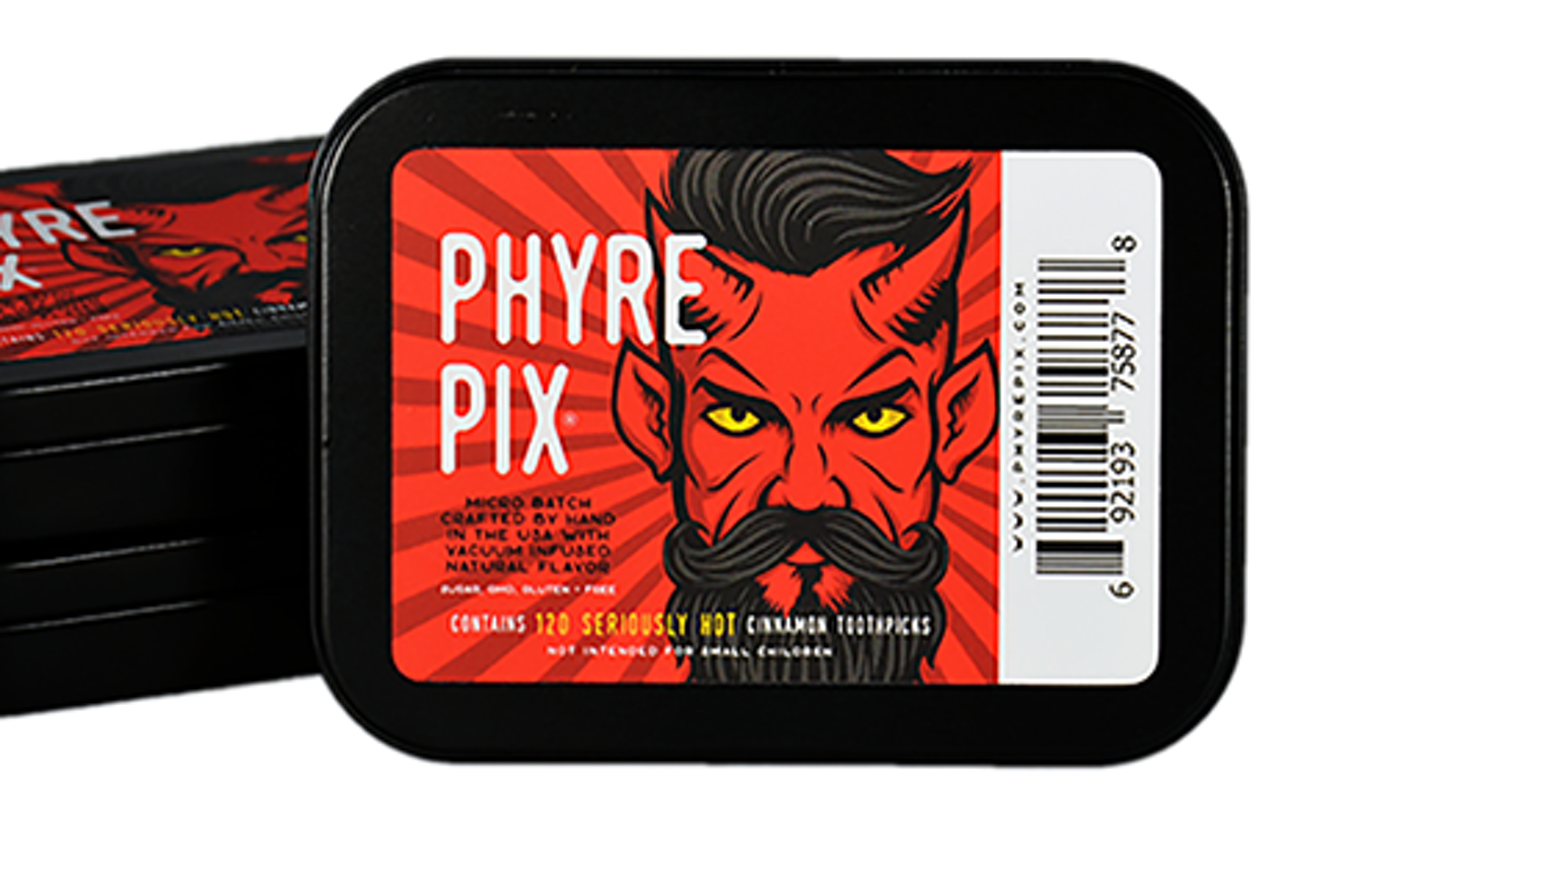 The campaign may be over - but now you can find Phyre Pix at the link below!